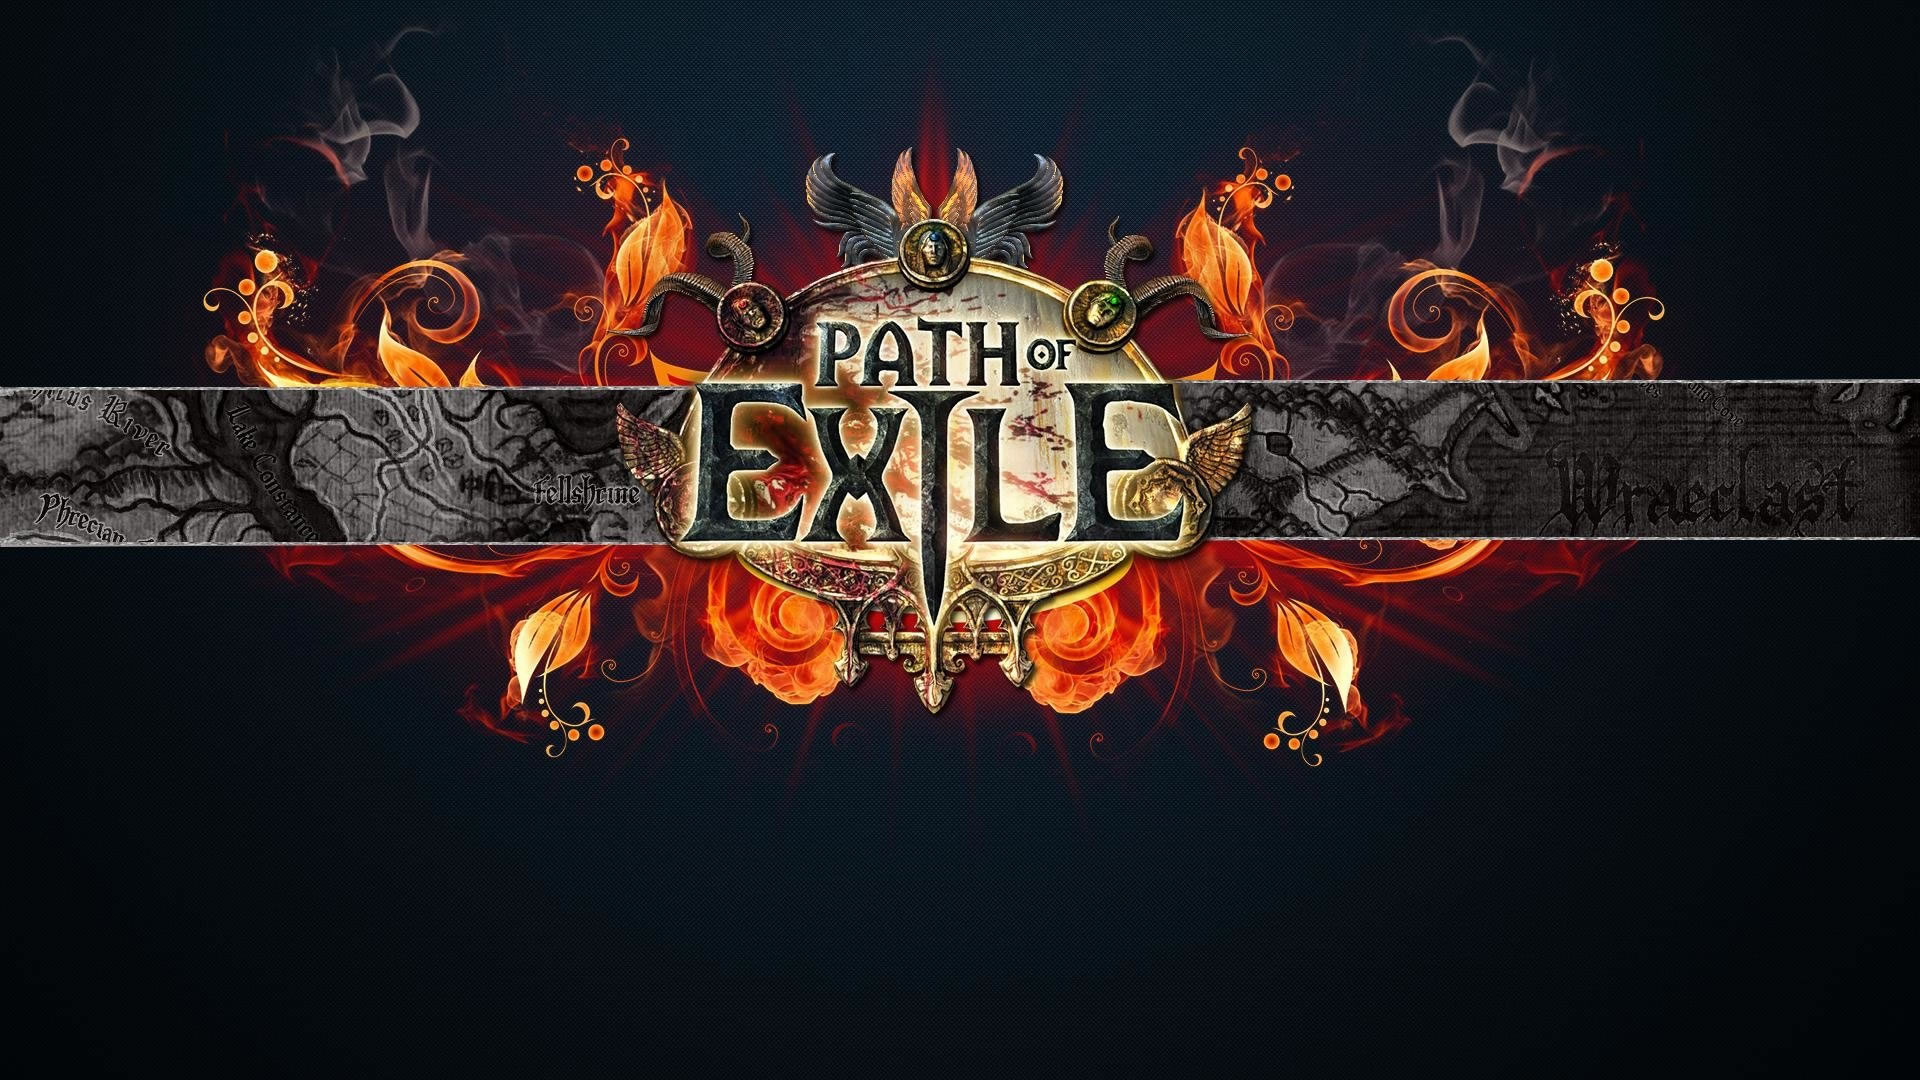 Path of Exile wallpaper - 2